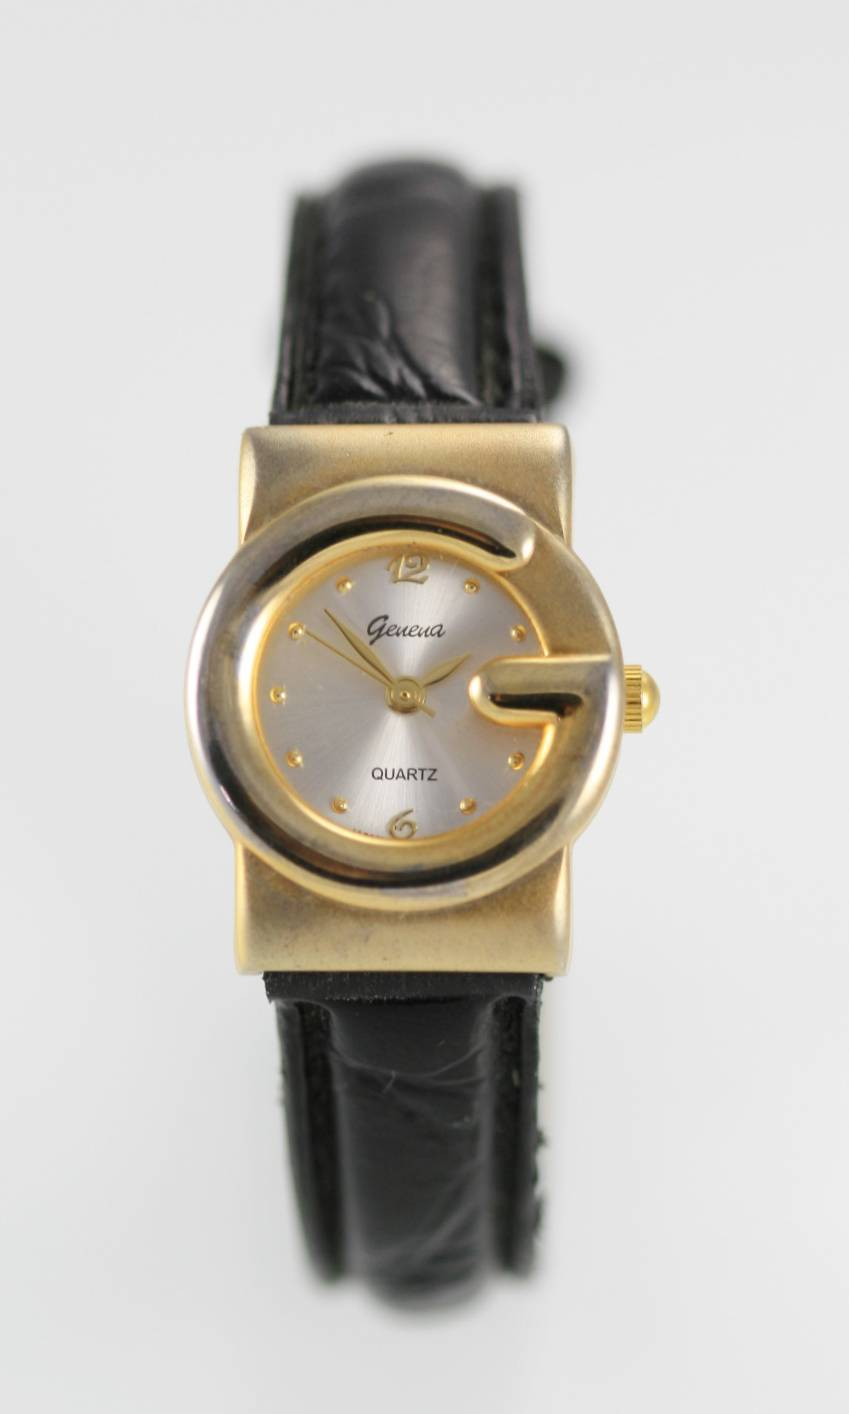 How to change battery on a Geneve Quartz Watch? - YouTube